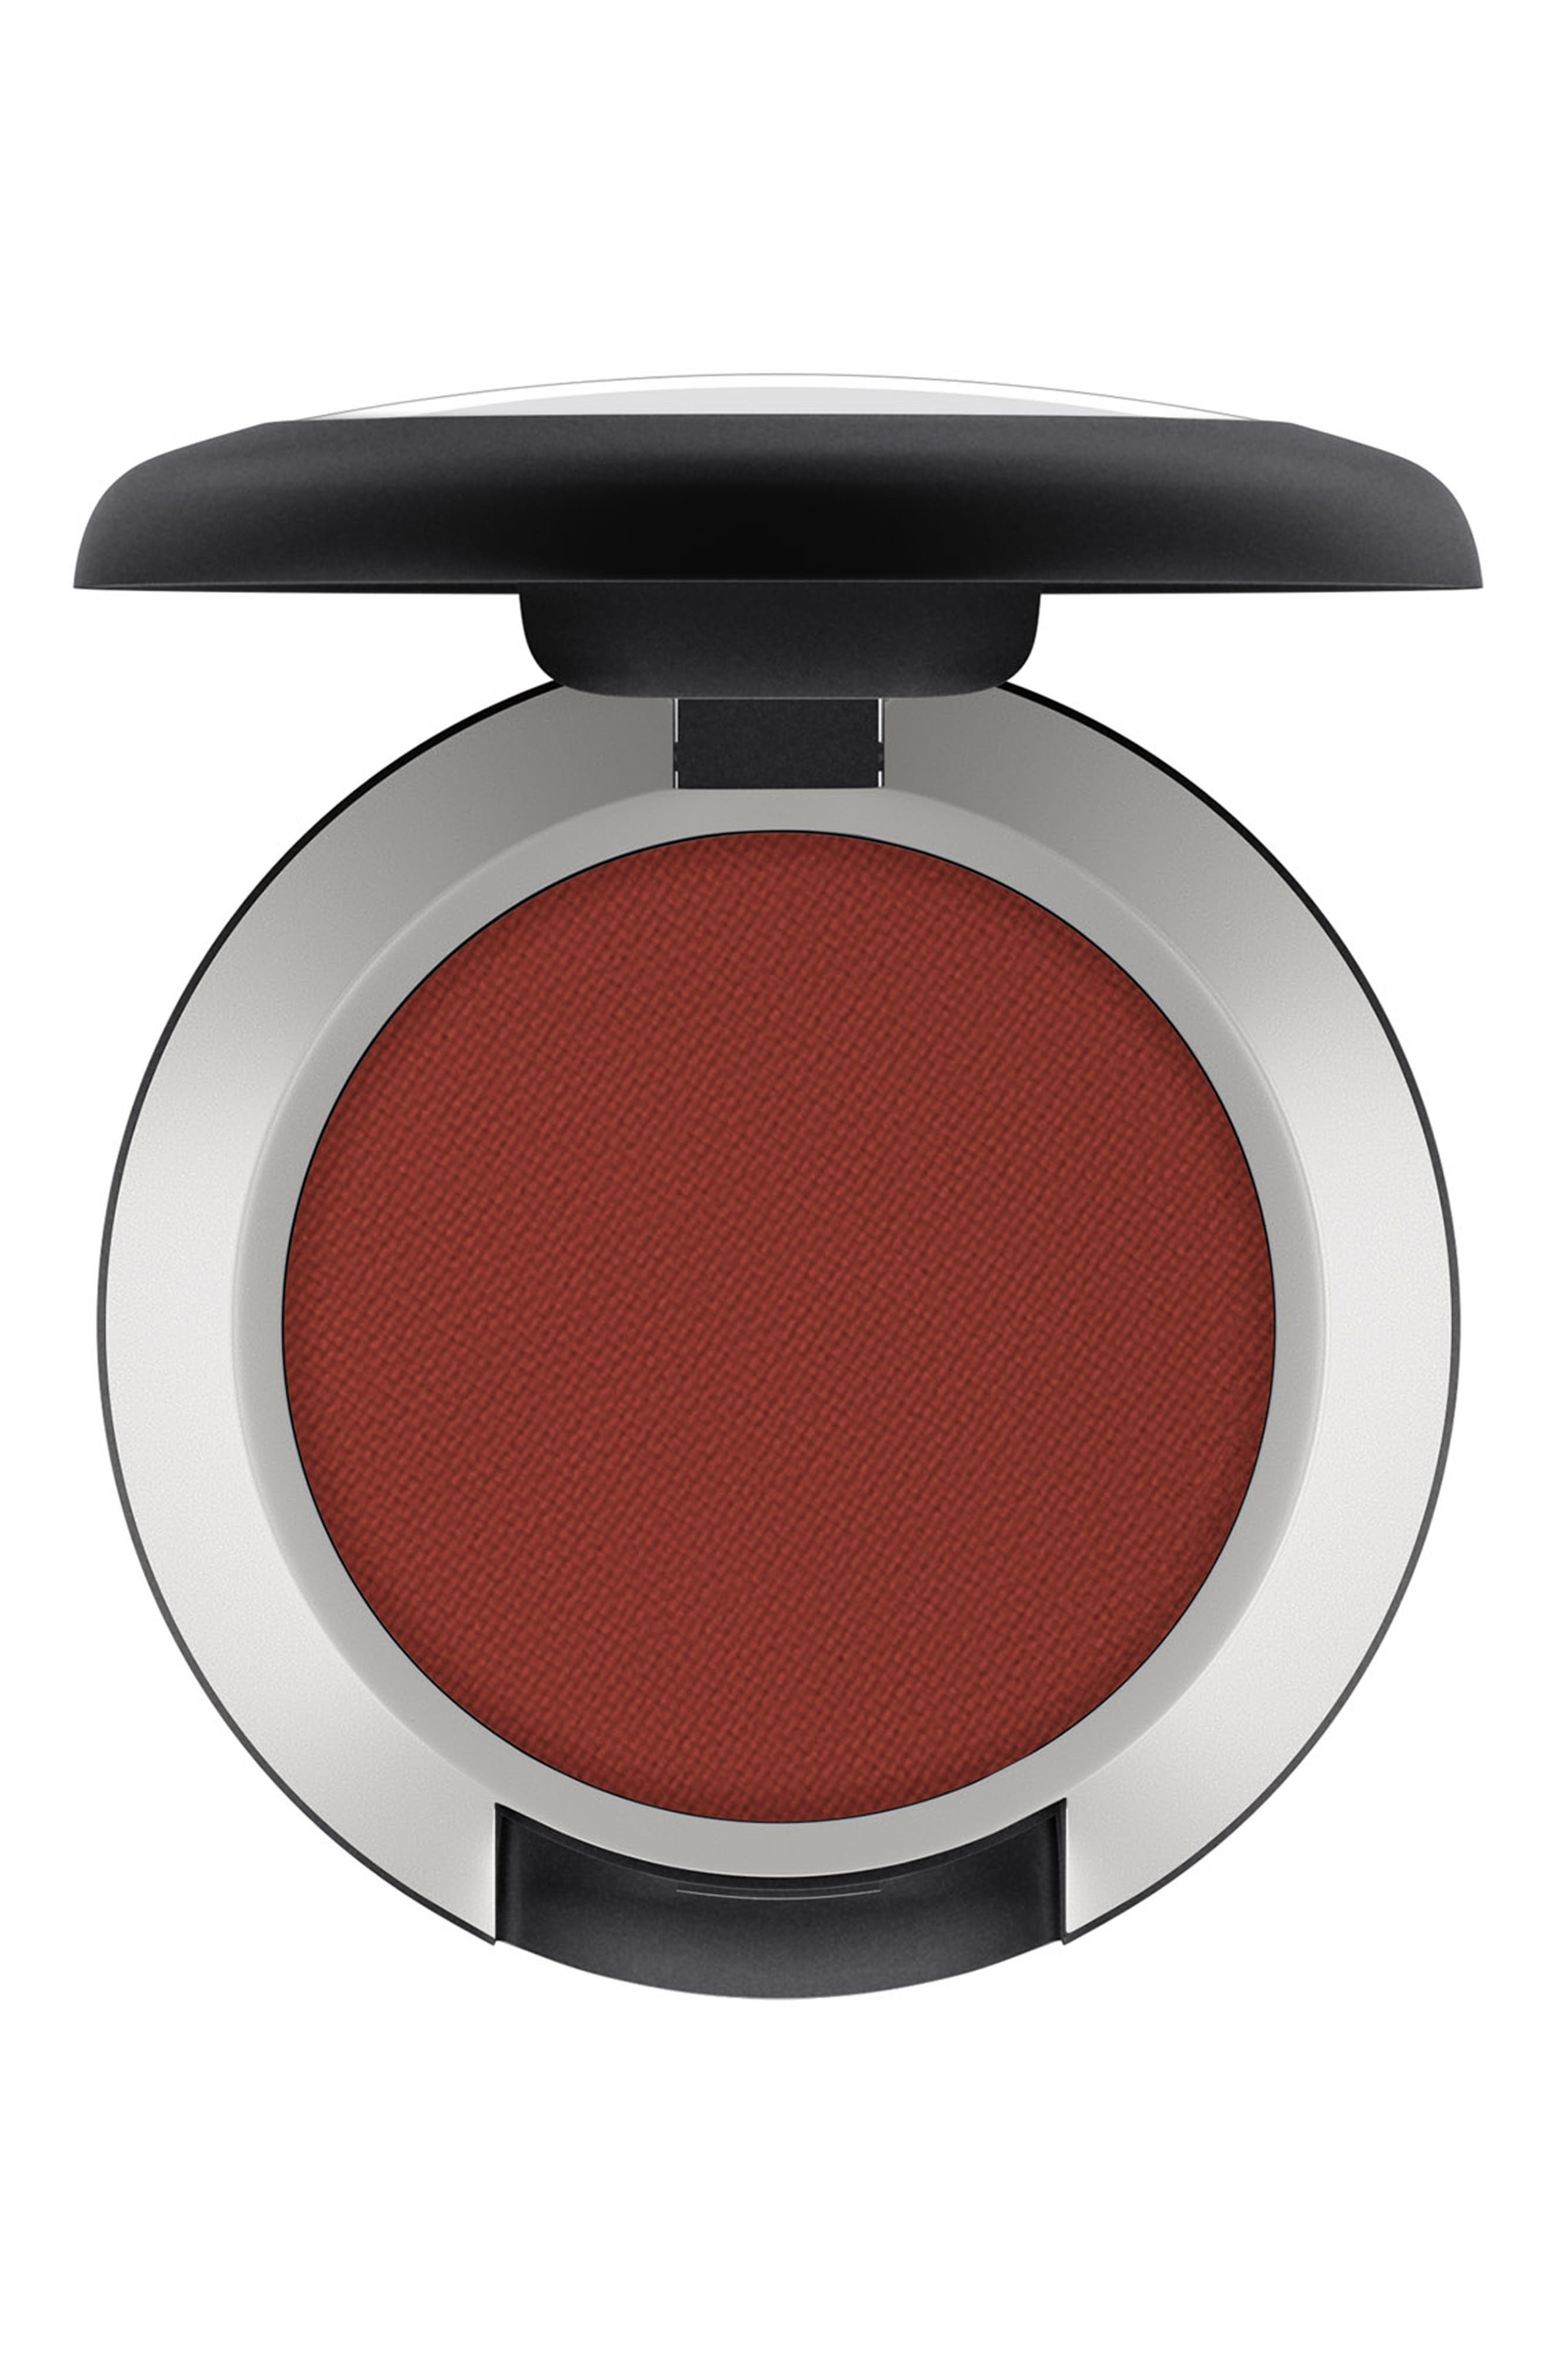 What it is: A matte-finish eyeshadow that provides rich, saturated color without shine in an even, easy-to-blend, long-lasting formula. What it does: MAC Eyeshadow is a highly pigmented pressed formula that delivers high color payoff with a single swipe. The revamped matte-finish formula is long-lasting and can be used wet or dry. Key claims and benefits: - Stay-true color- Moisture-matte formula- Nonfading, noncreasing, nondrying